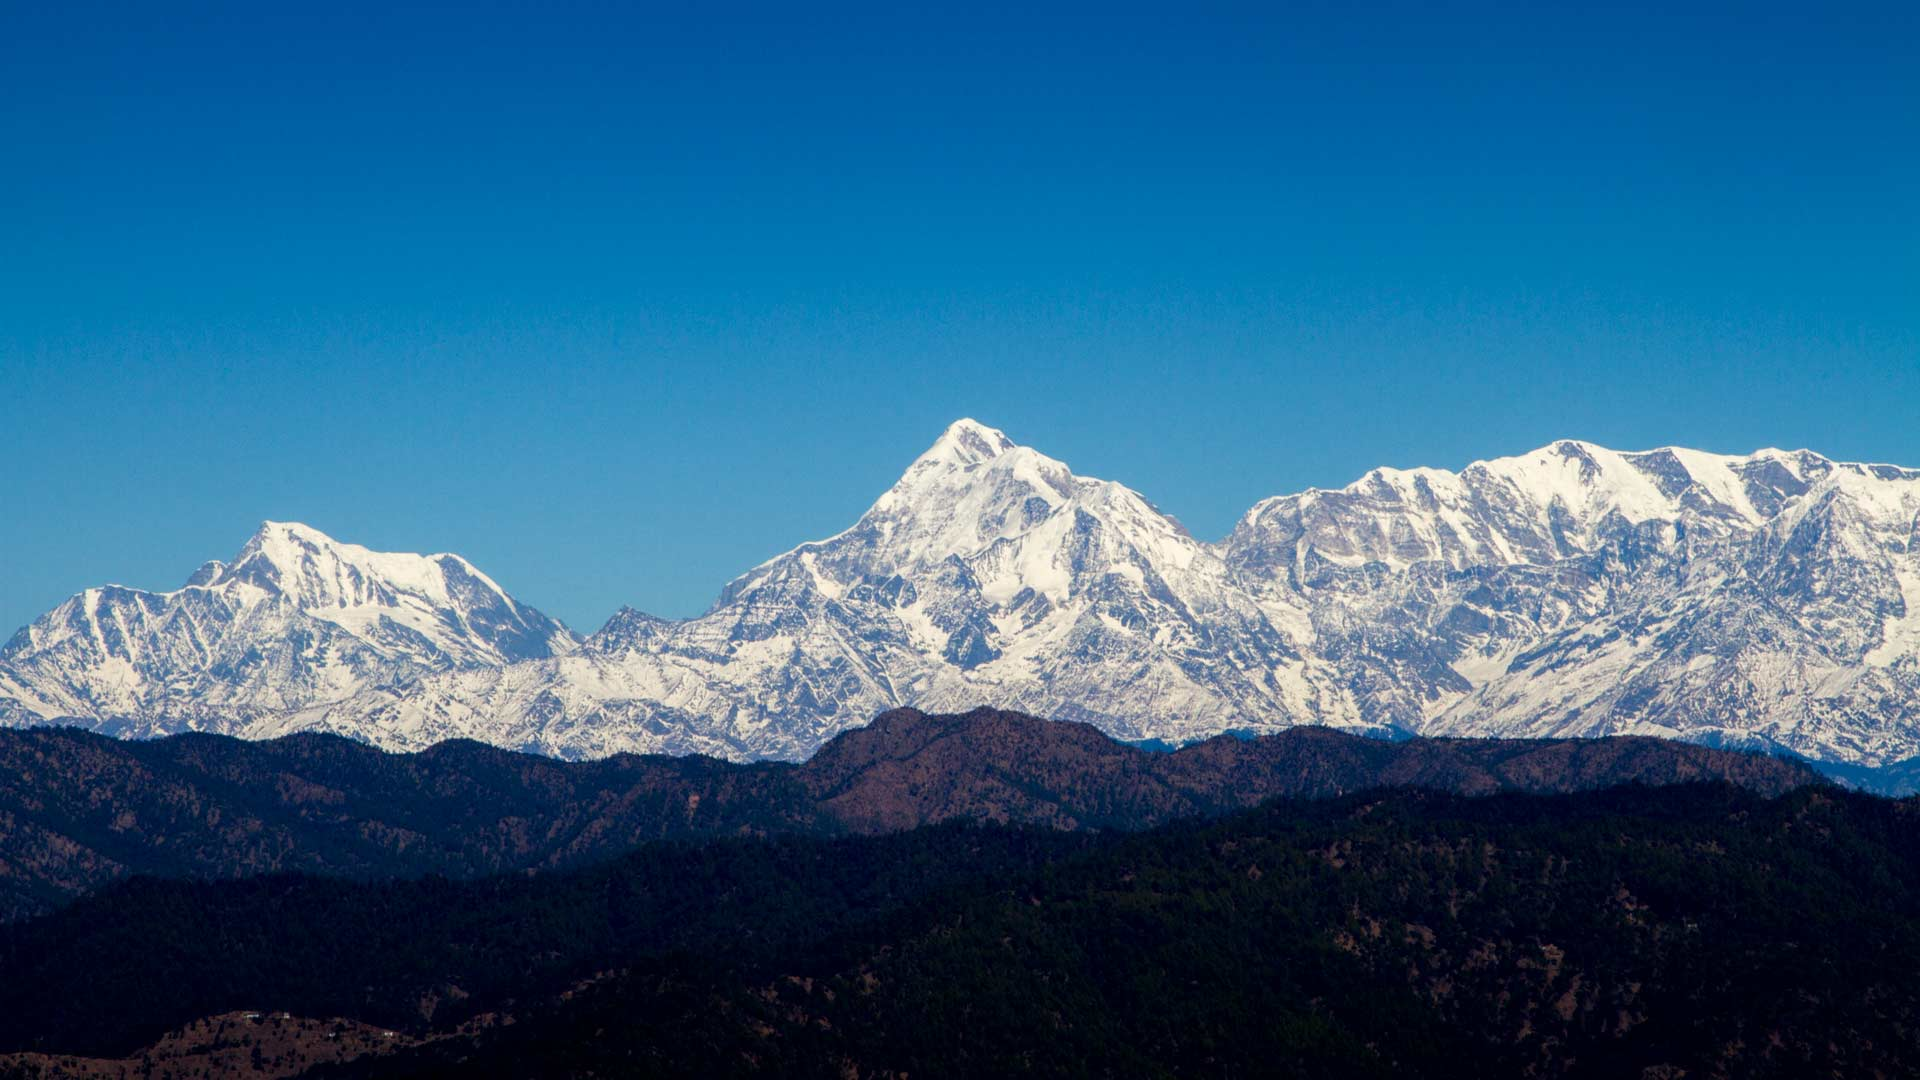 Views of the Himalayas